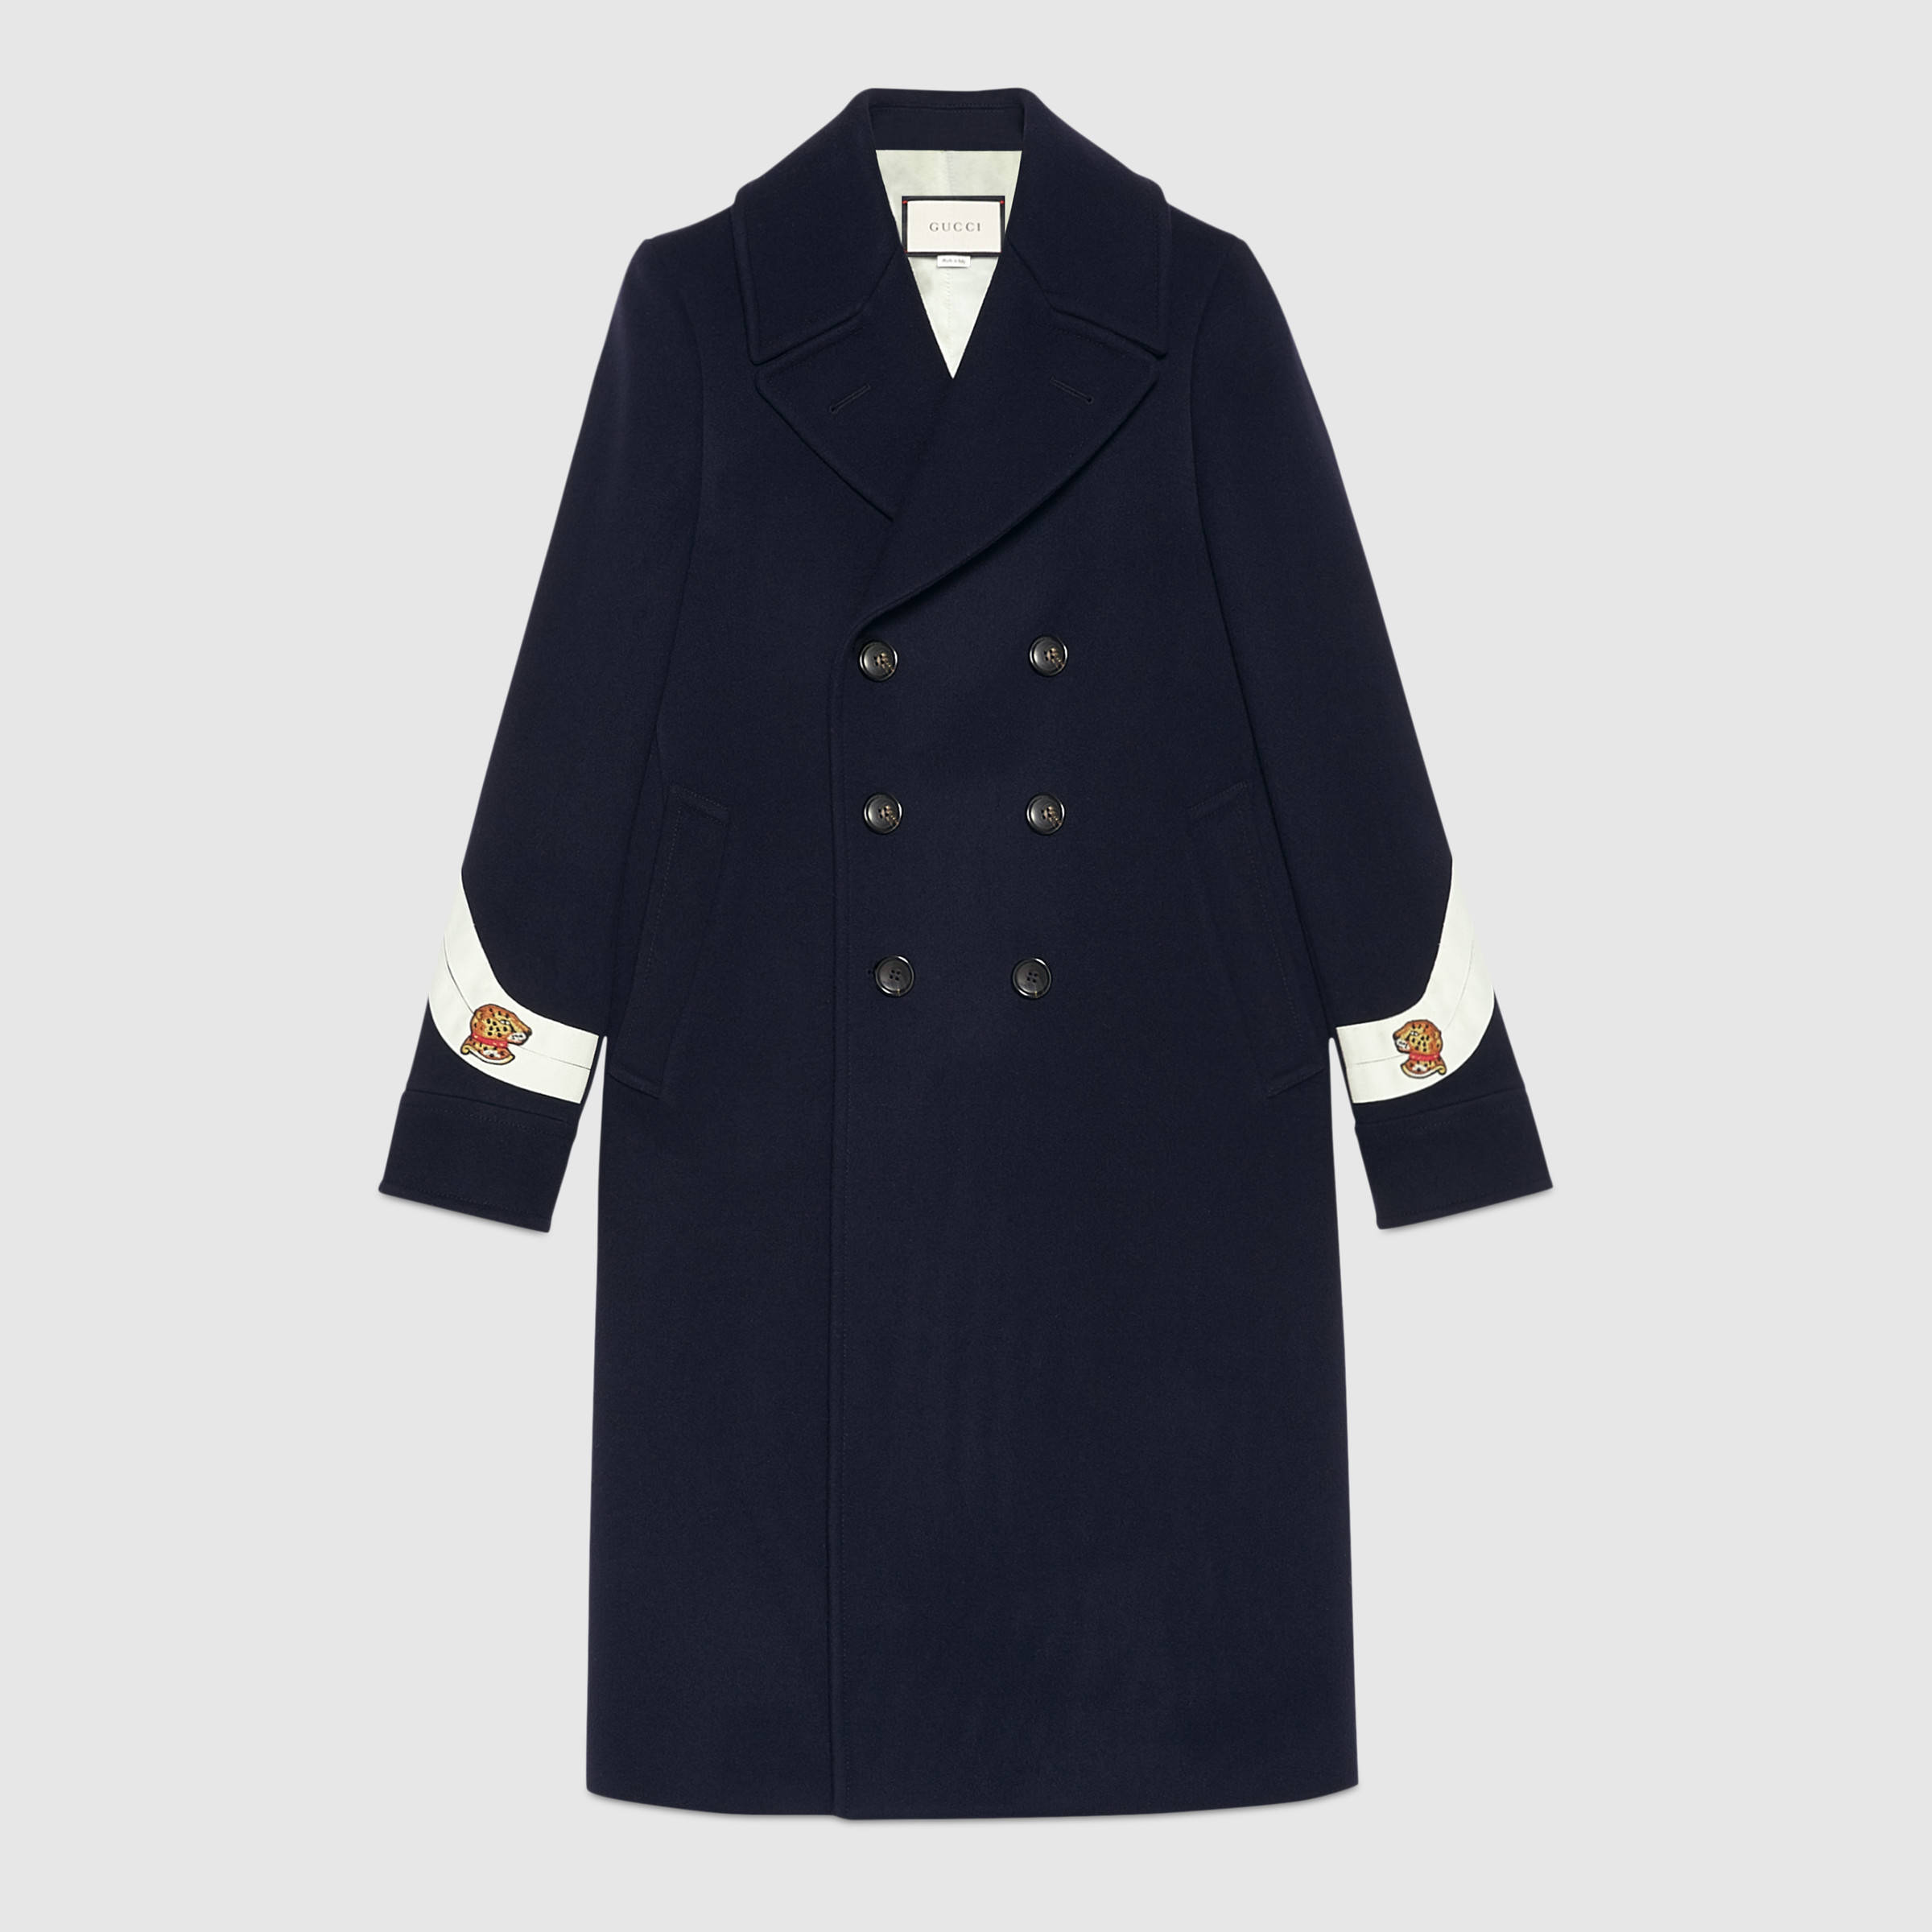 coats for men wool cashmere jacket KXQBMZB